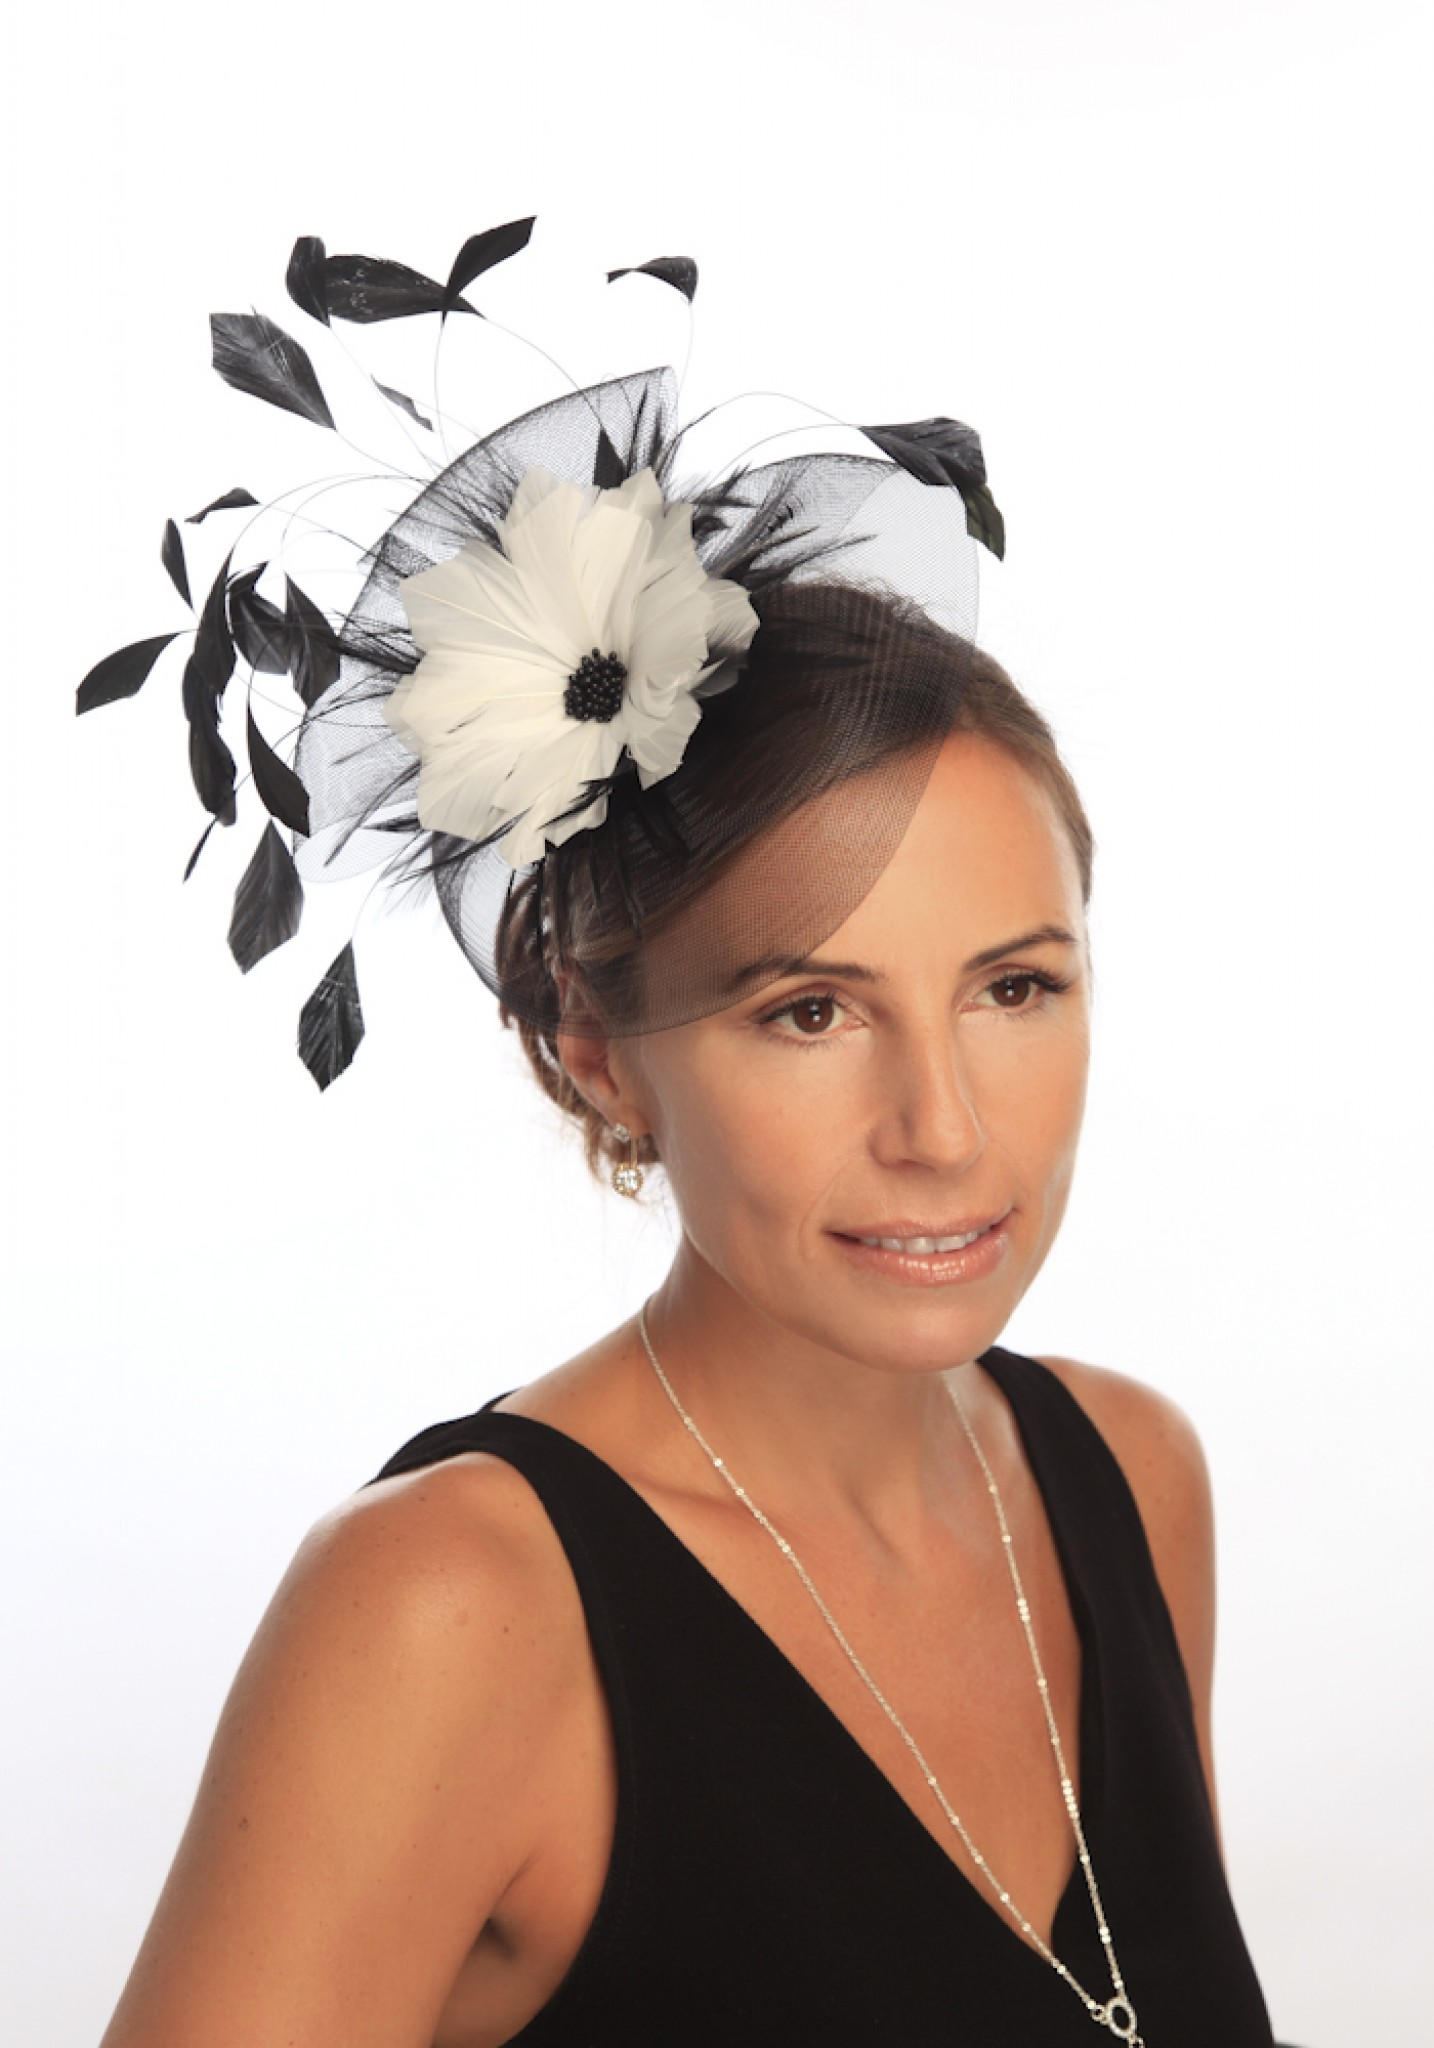 Snoxell Gwyther - Fascinator (Black white) - Fascinators  7a9b19c5dc3